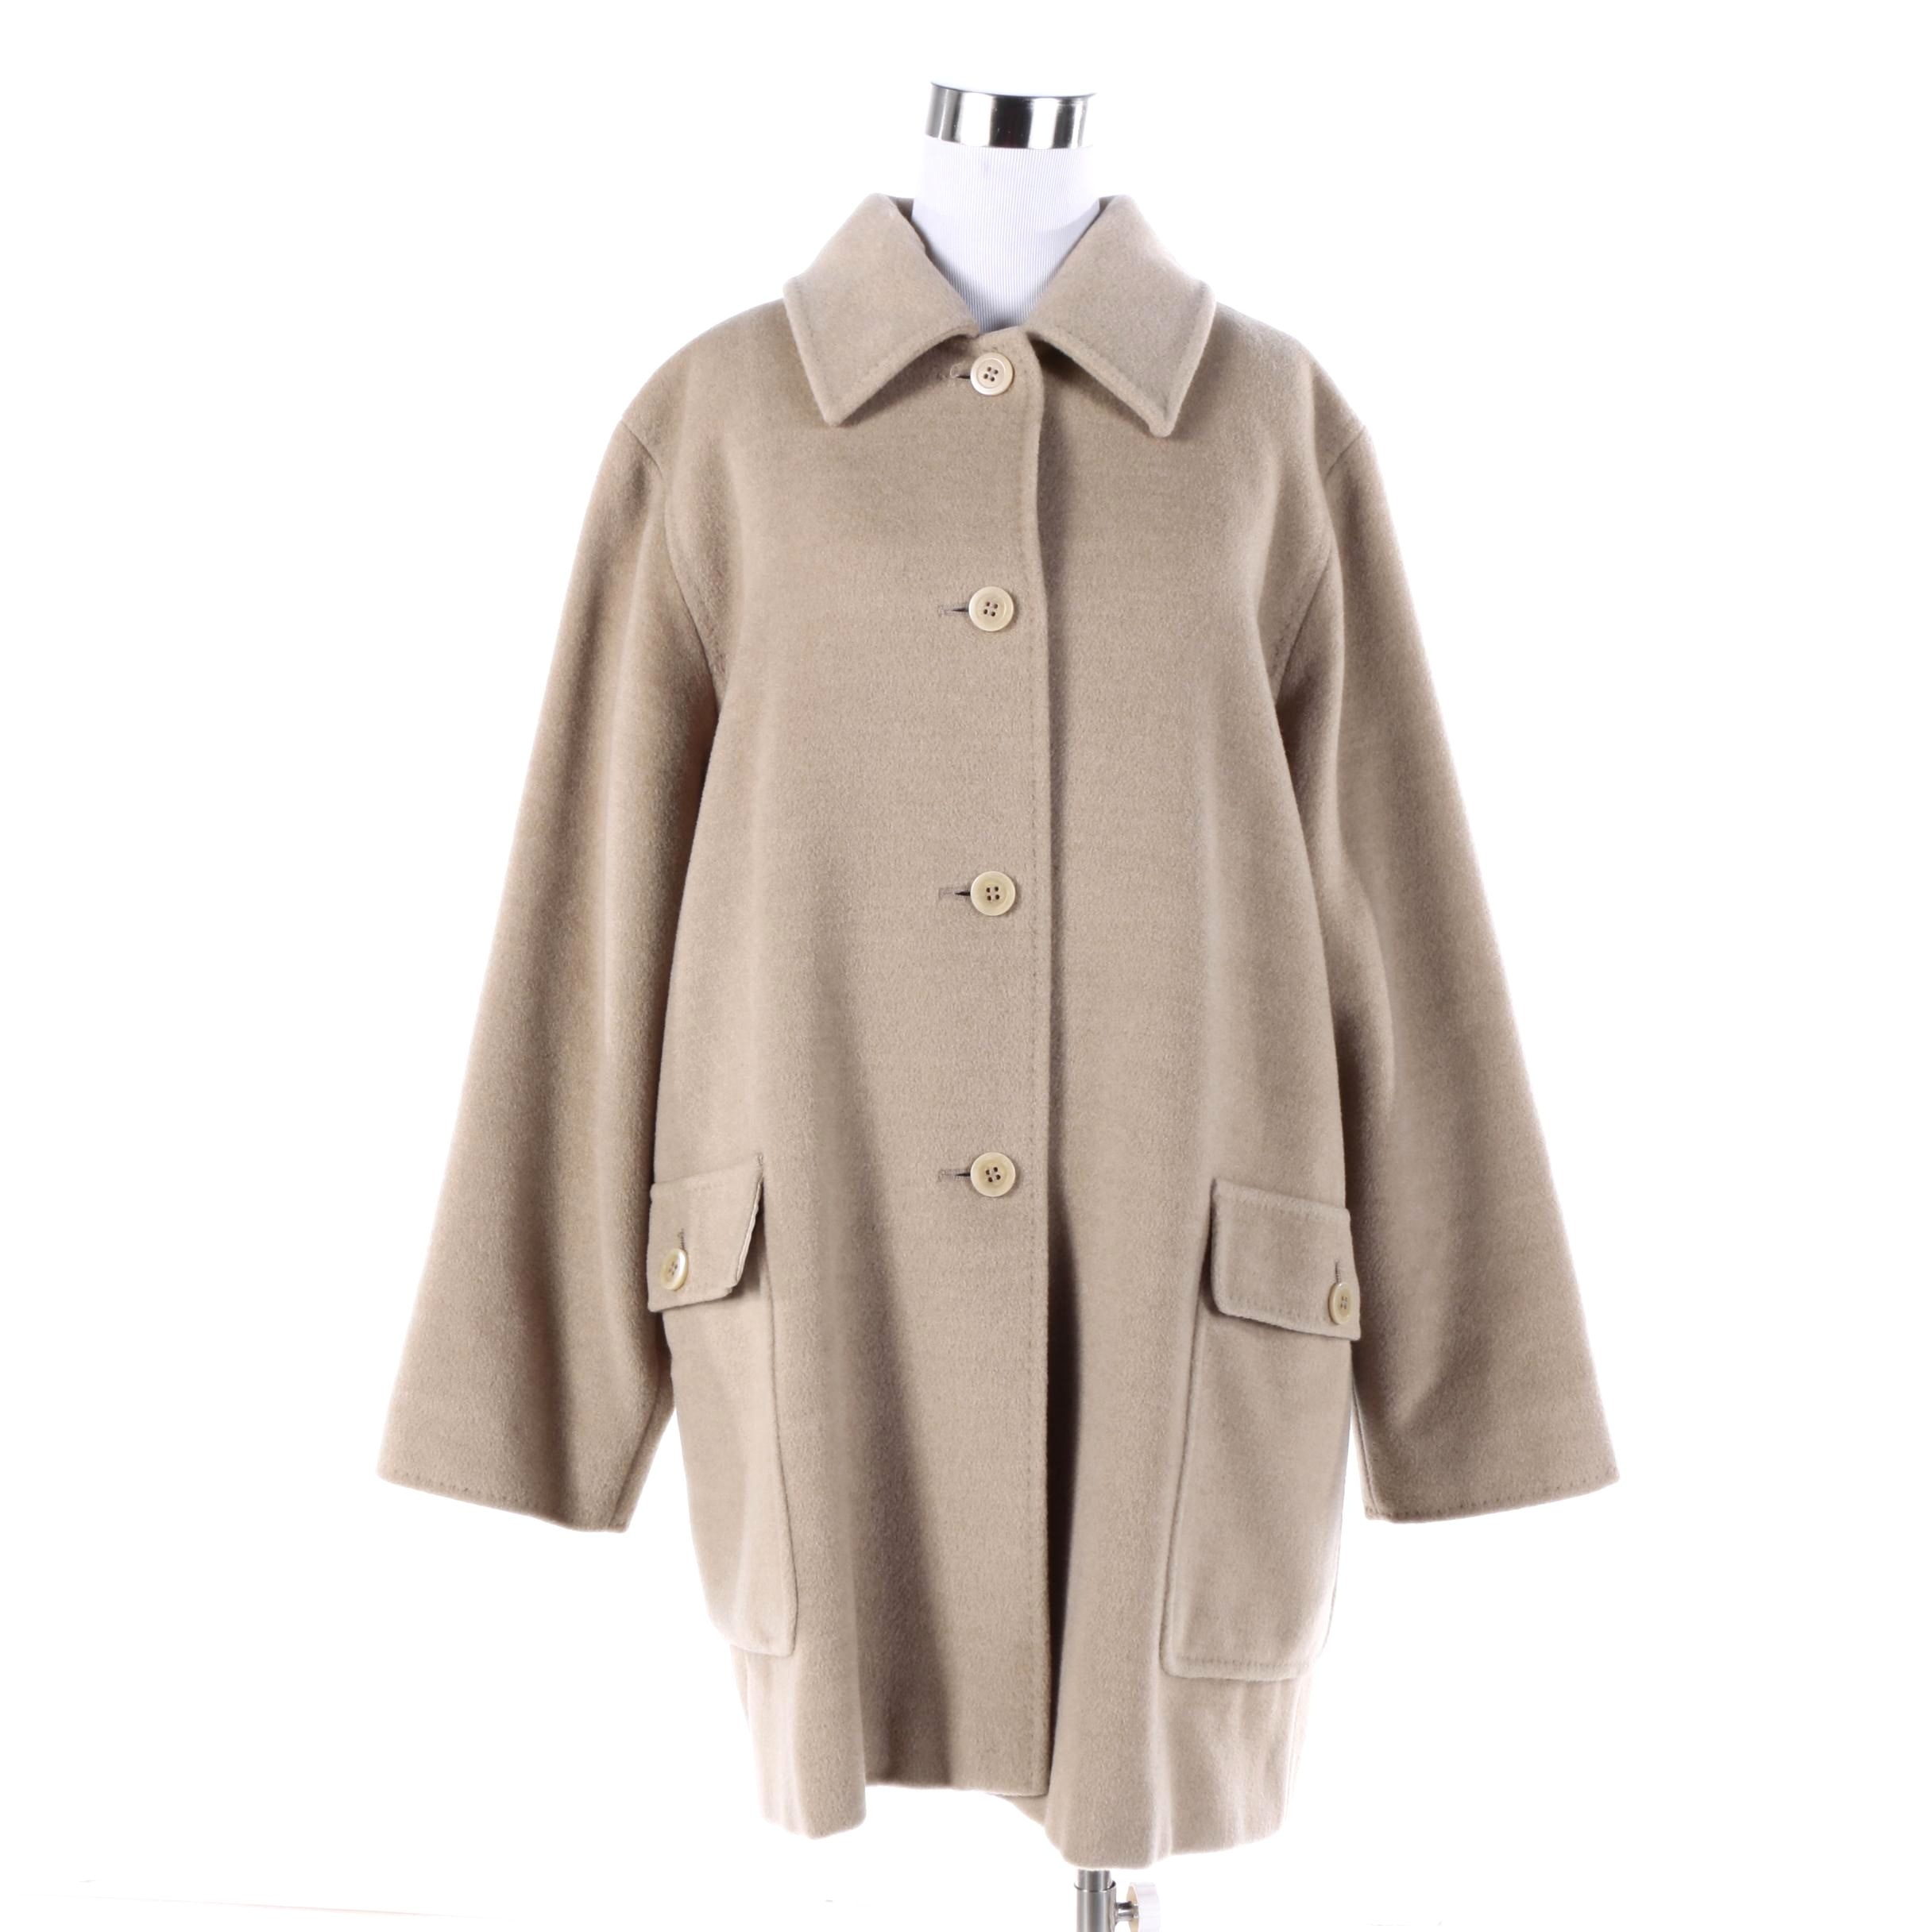 Women's Max Mara Beige Cashmere Wool Blend Coat